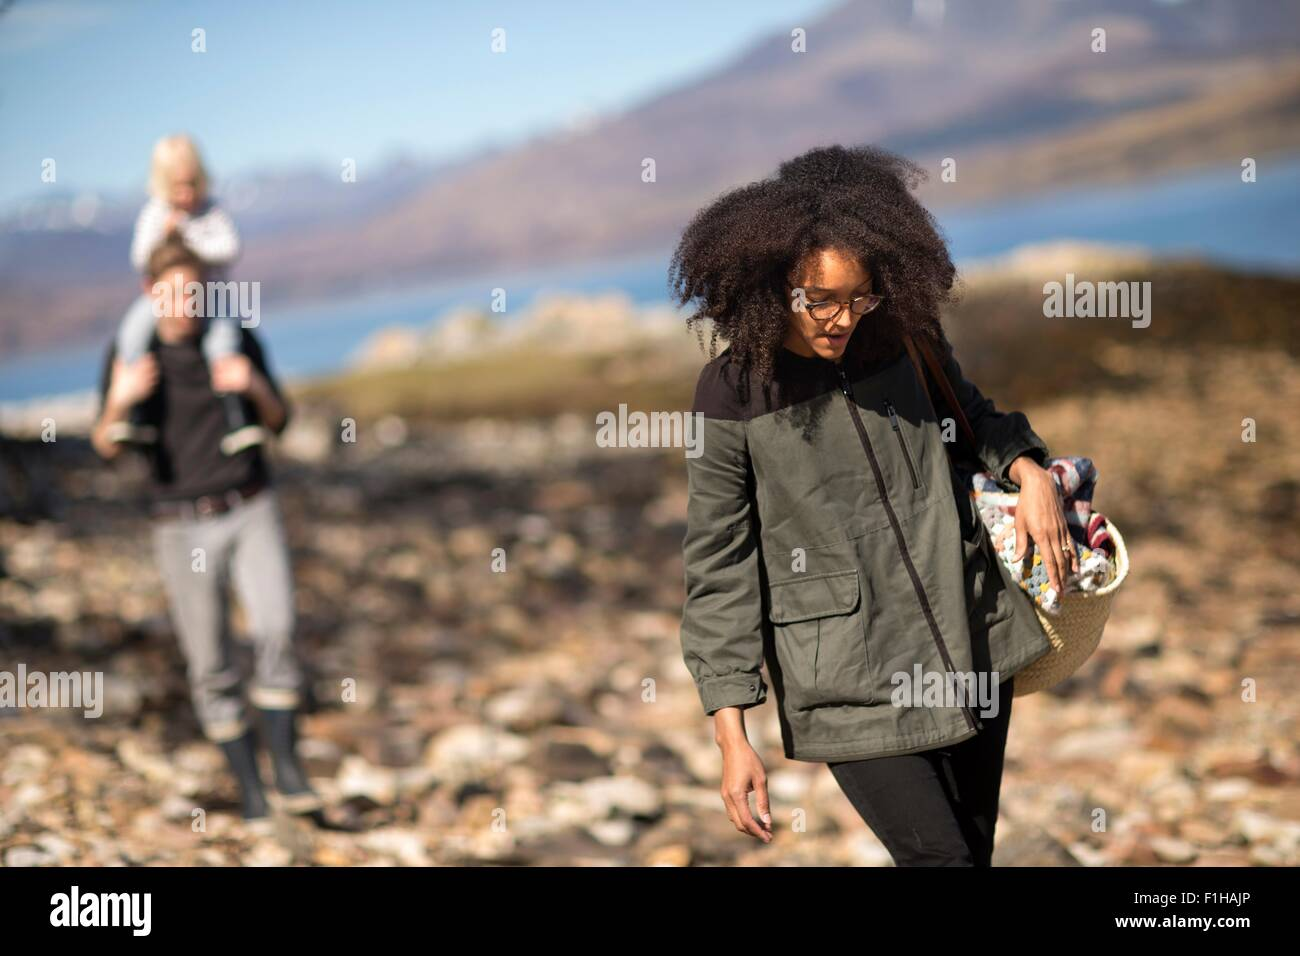 Woman walking with man and child in background - Stock Image